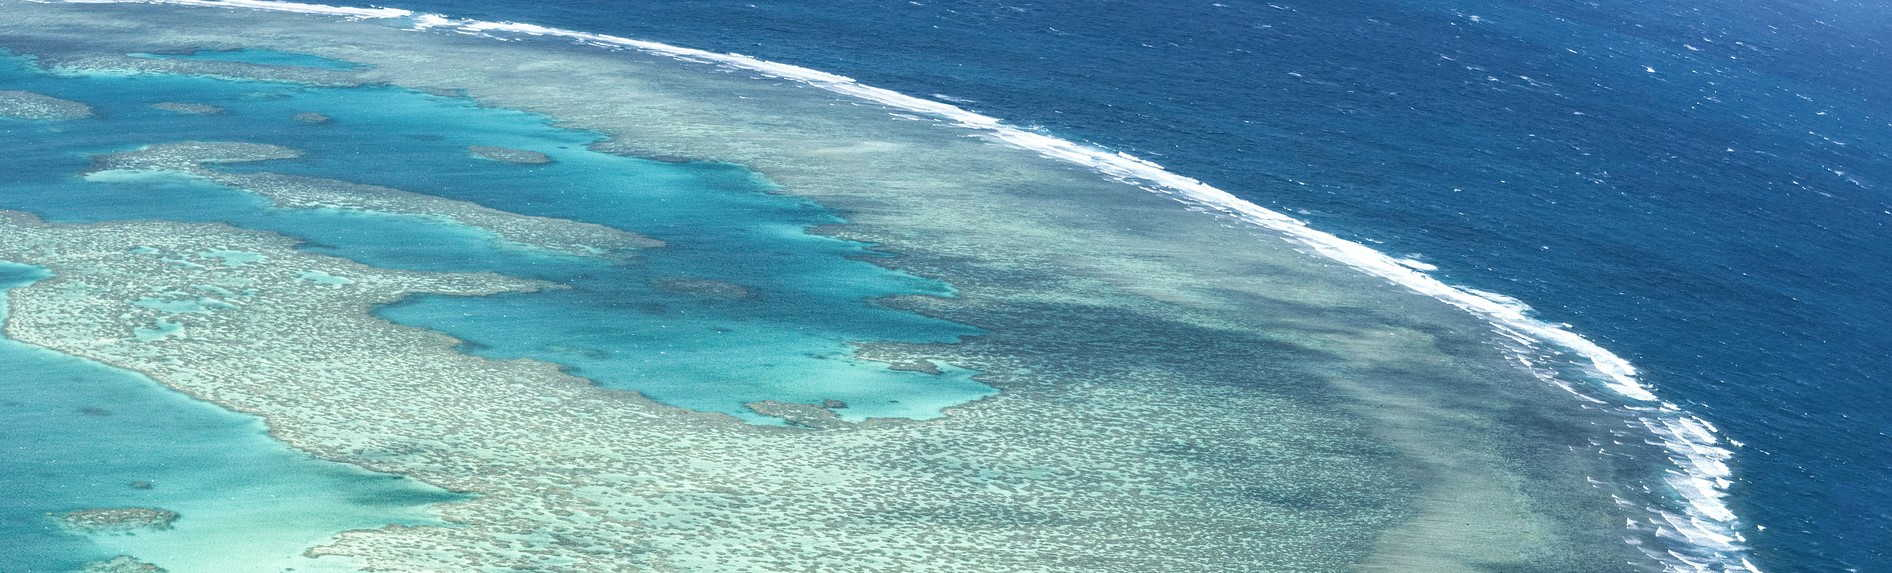 Where should I stay to see the Great Barrier Reef?